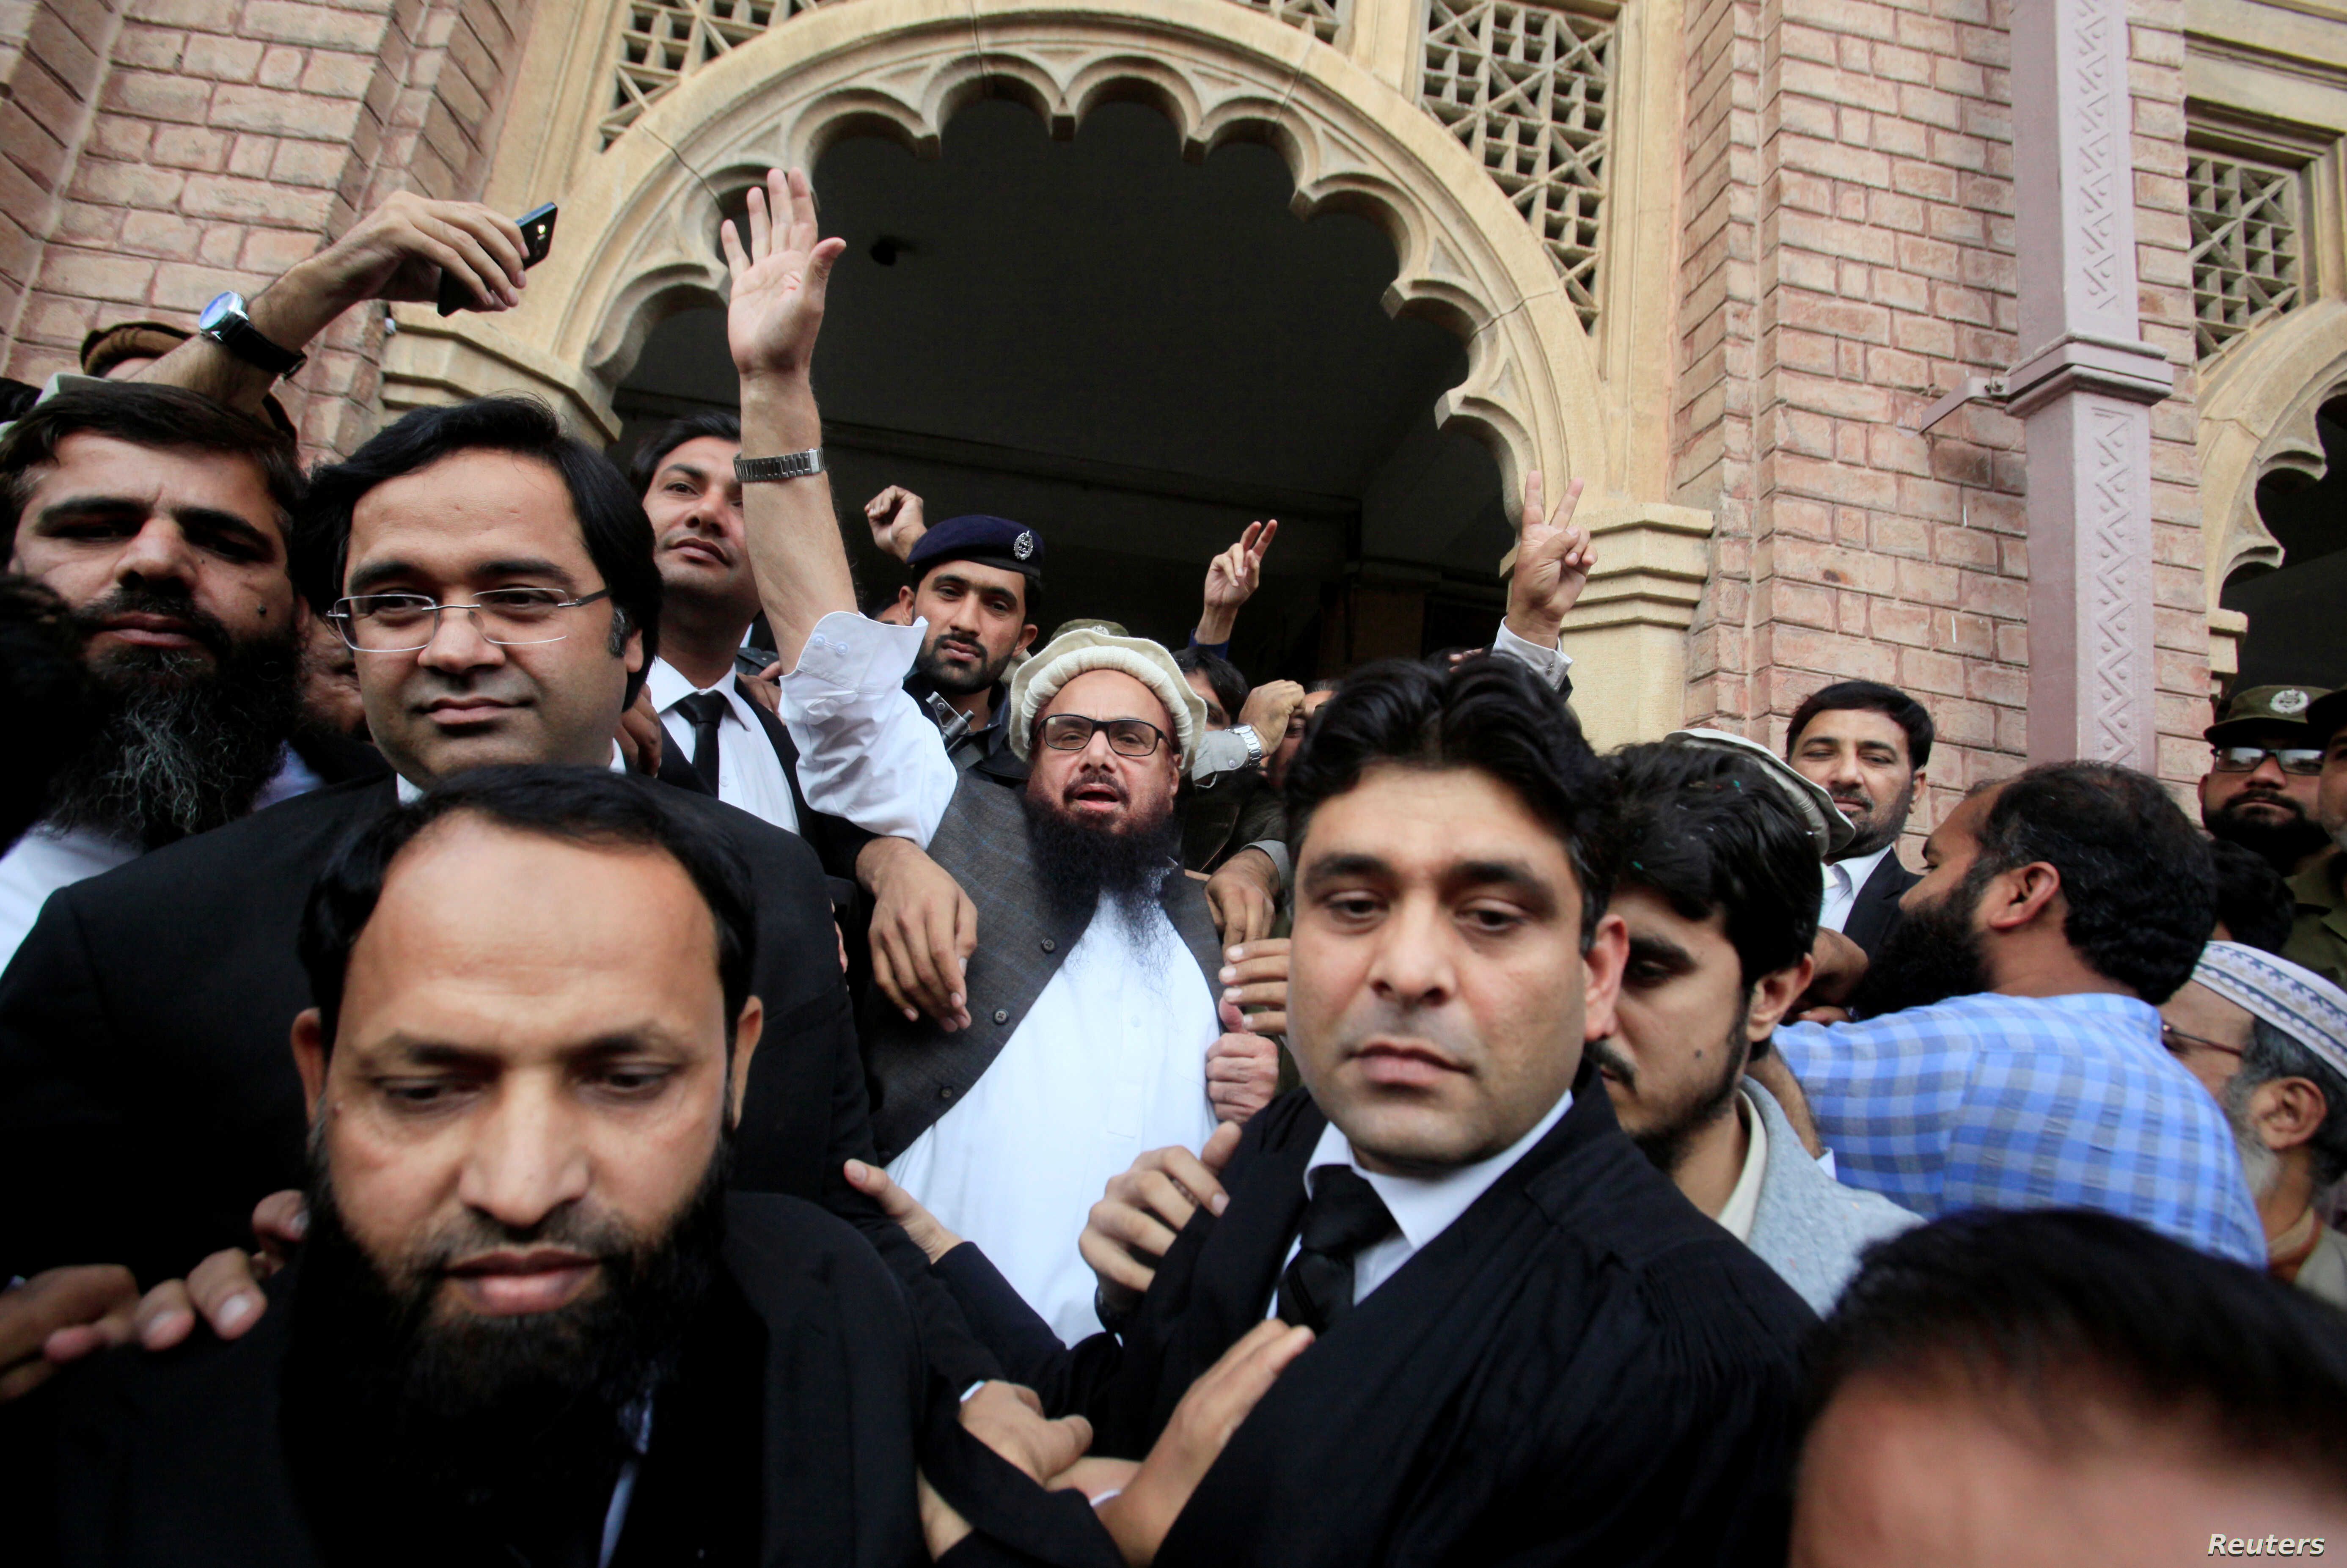 Hafiz Saeed (C) reacts to supporters as he walks out of court after a Pakistani court ordered his release from house arrest in Lahore, Pakistan, Nov.  22, 2017.